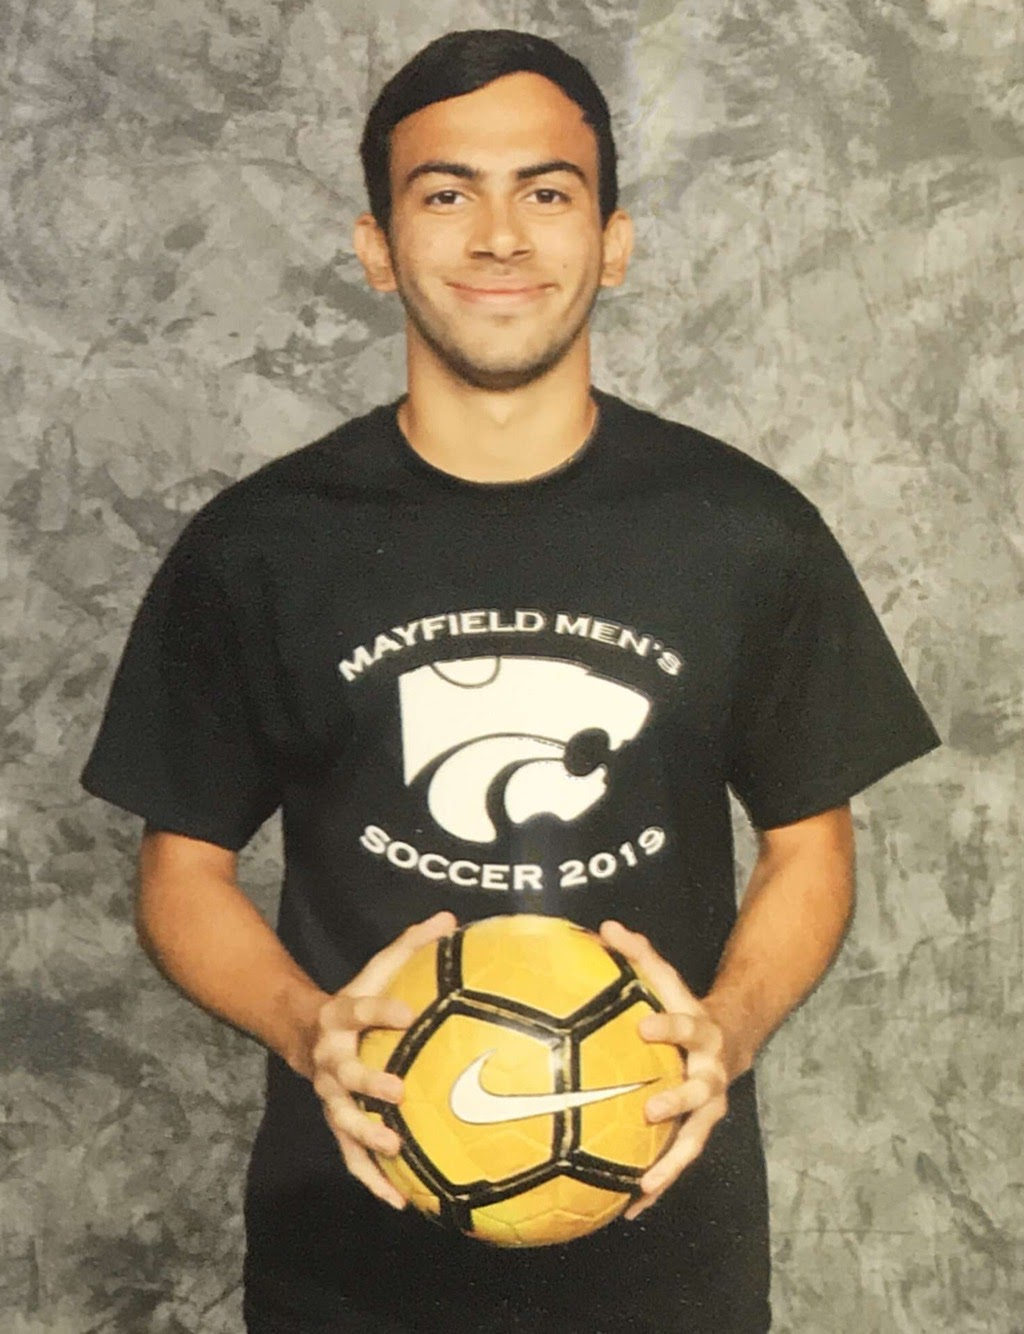 Indy Dhillon said he feels proud of his accomplishments to play soccer for the Mayfield men's team.